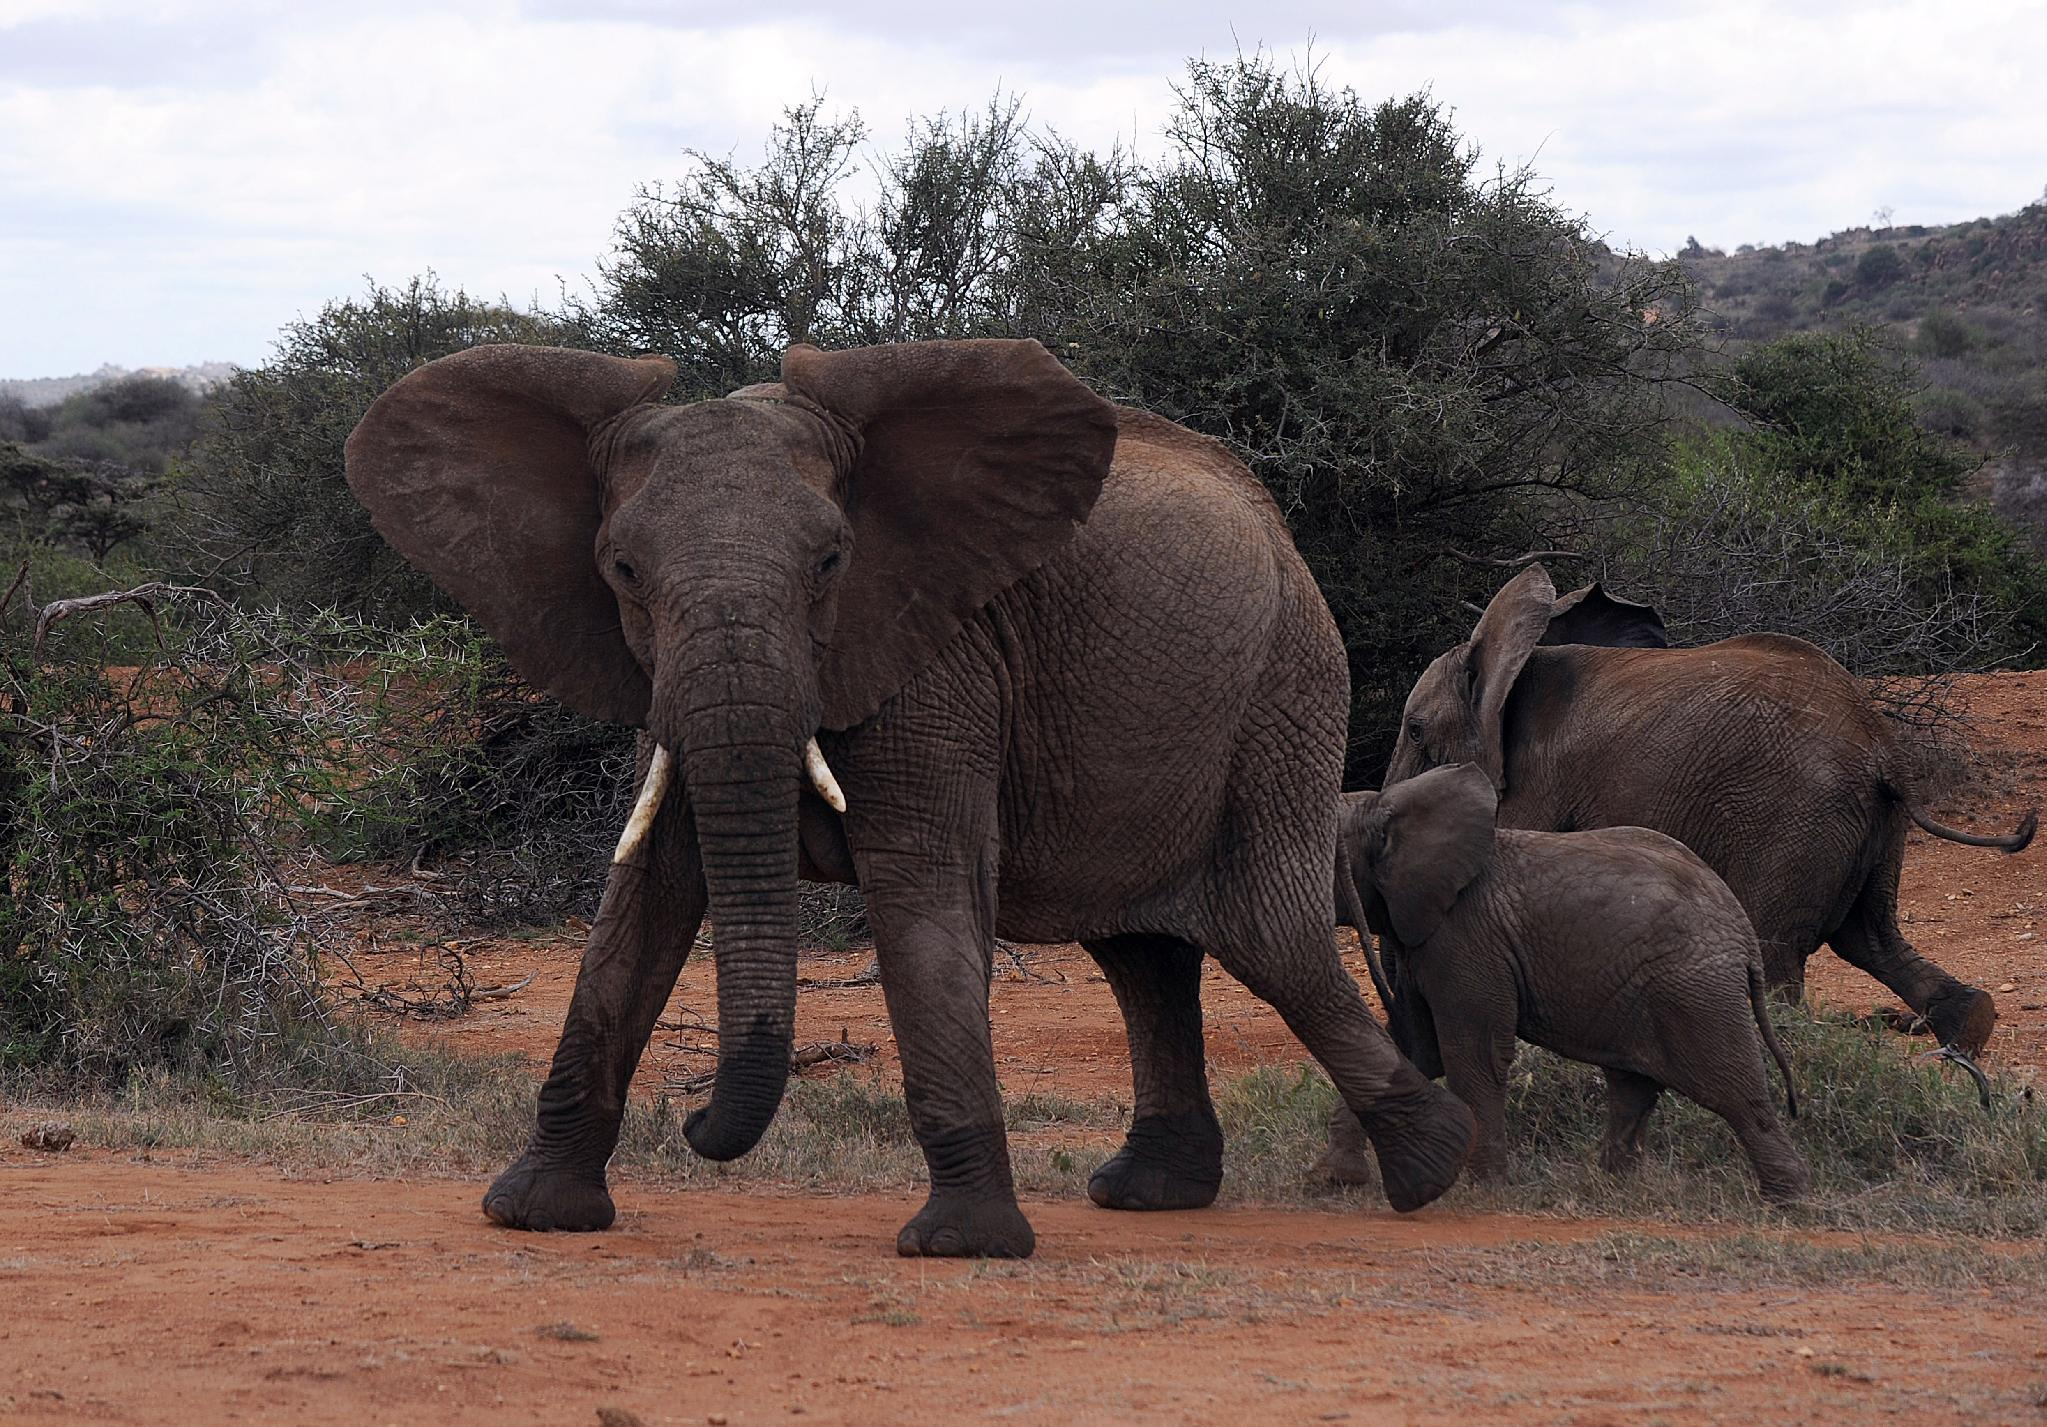 A family of elephants at the Ol Jogi rhino sanctuary in Nairobi on August 6, 2014 (AFP Photo/Tony Karumba)